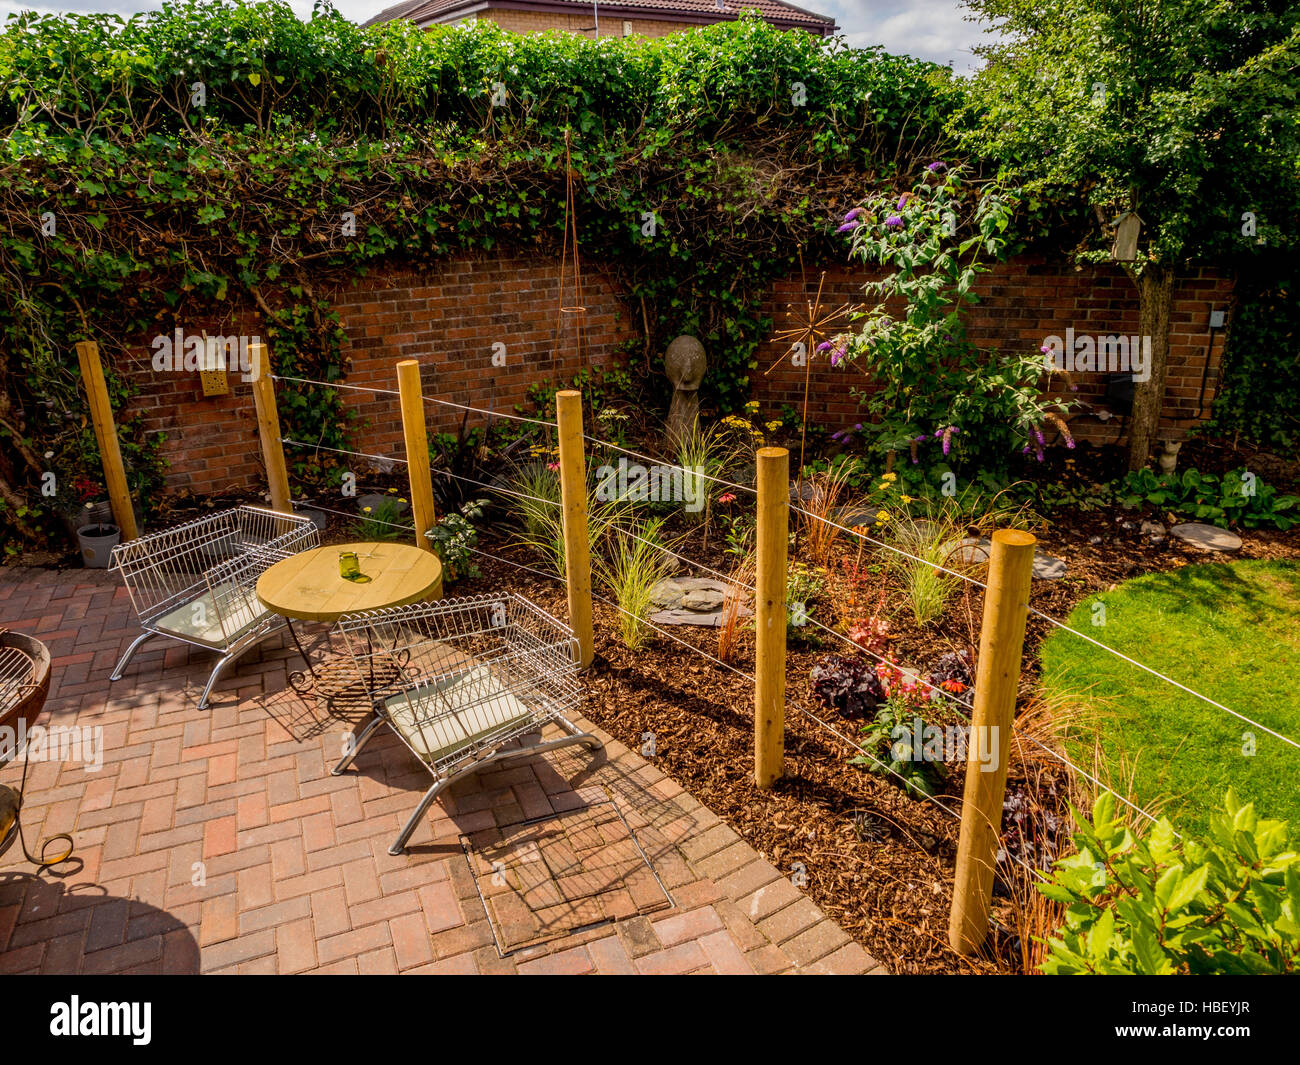 Modern Contemporary Walled Garden; Garden Areas Divided Using Wooden Stakes  To Create Outdoor Rooms In Modern Contemporary Design   Stock